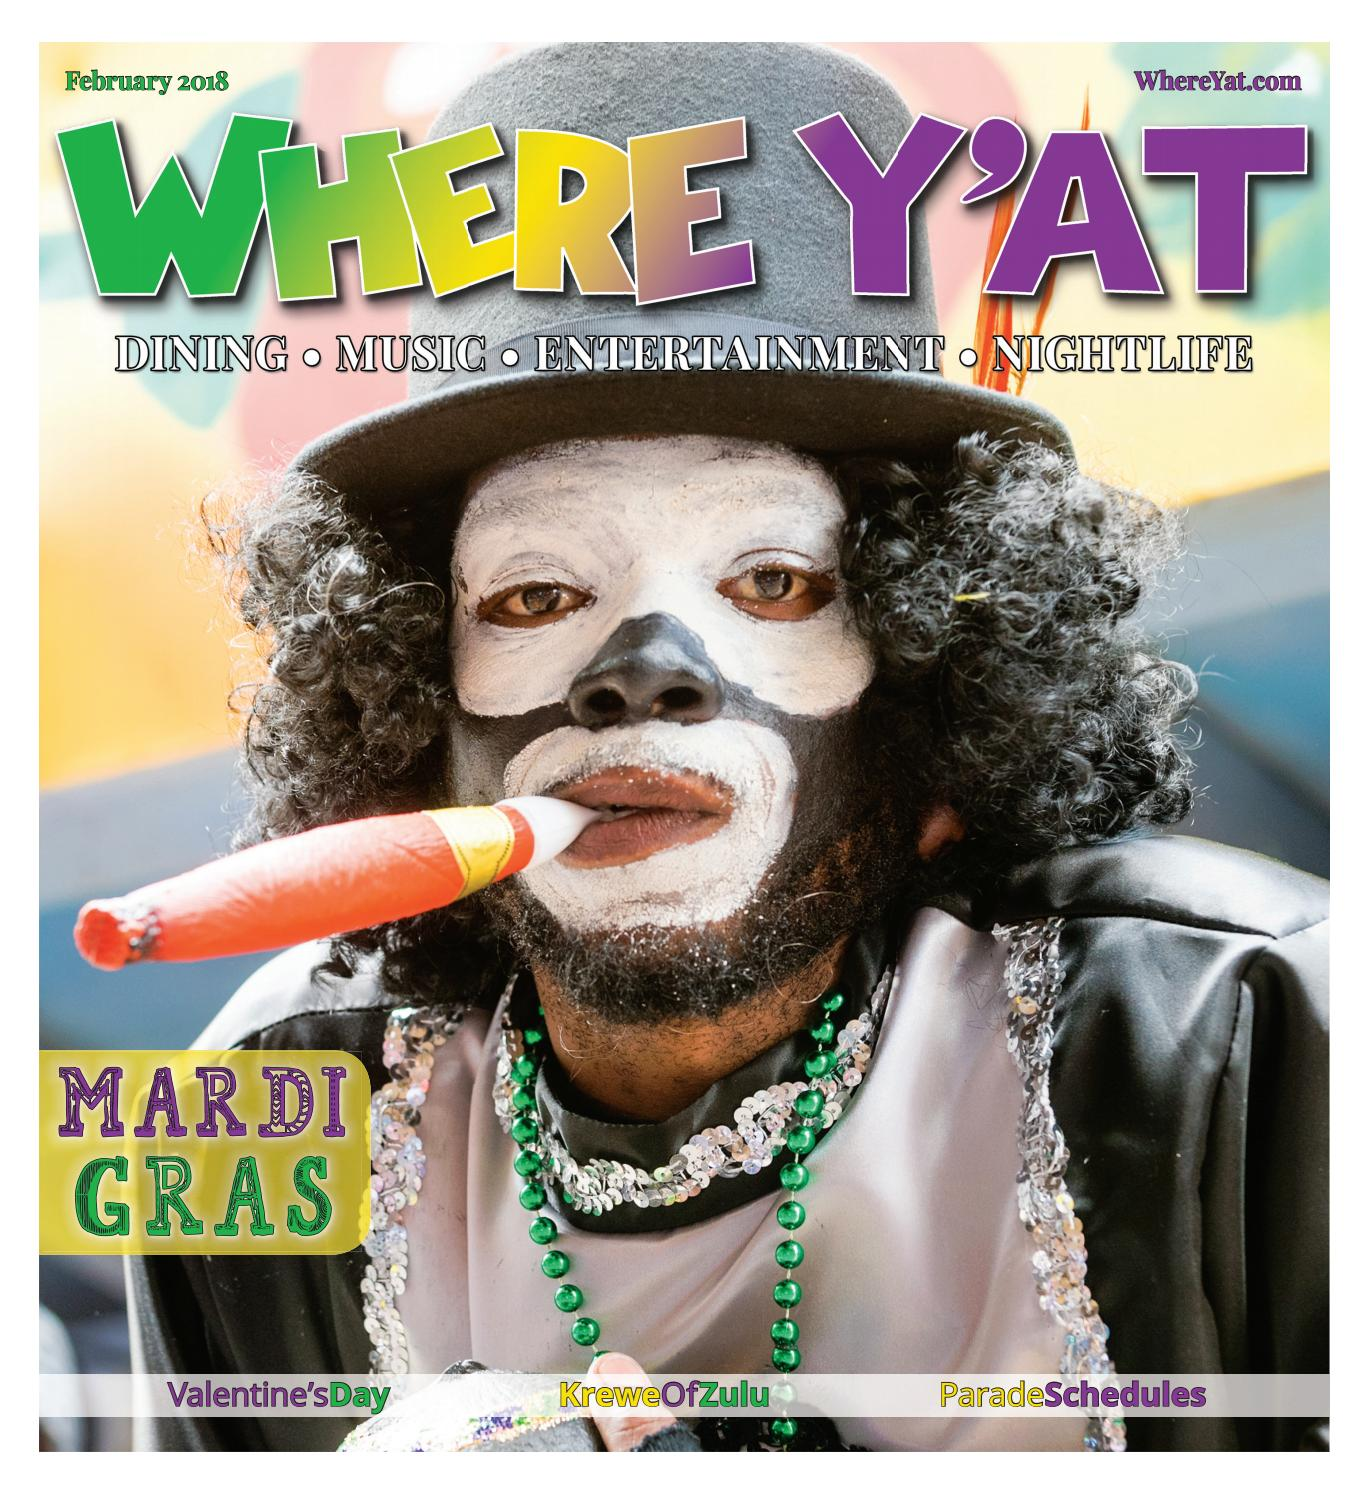 Mardi Gras 2018 by Where Y'at Magazine - issuu